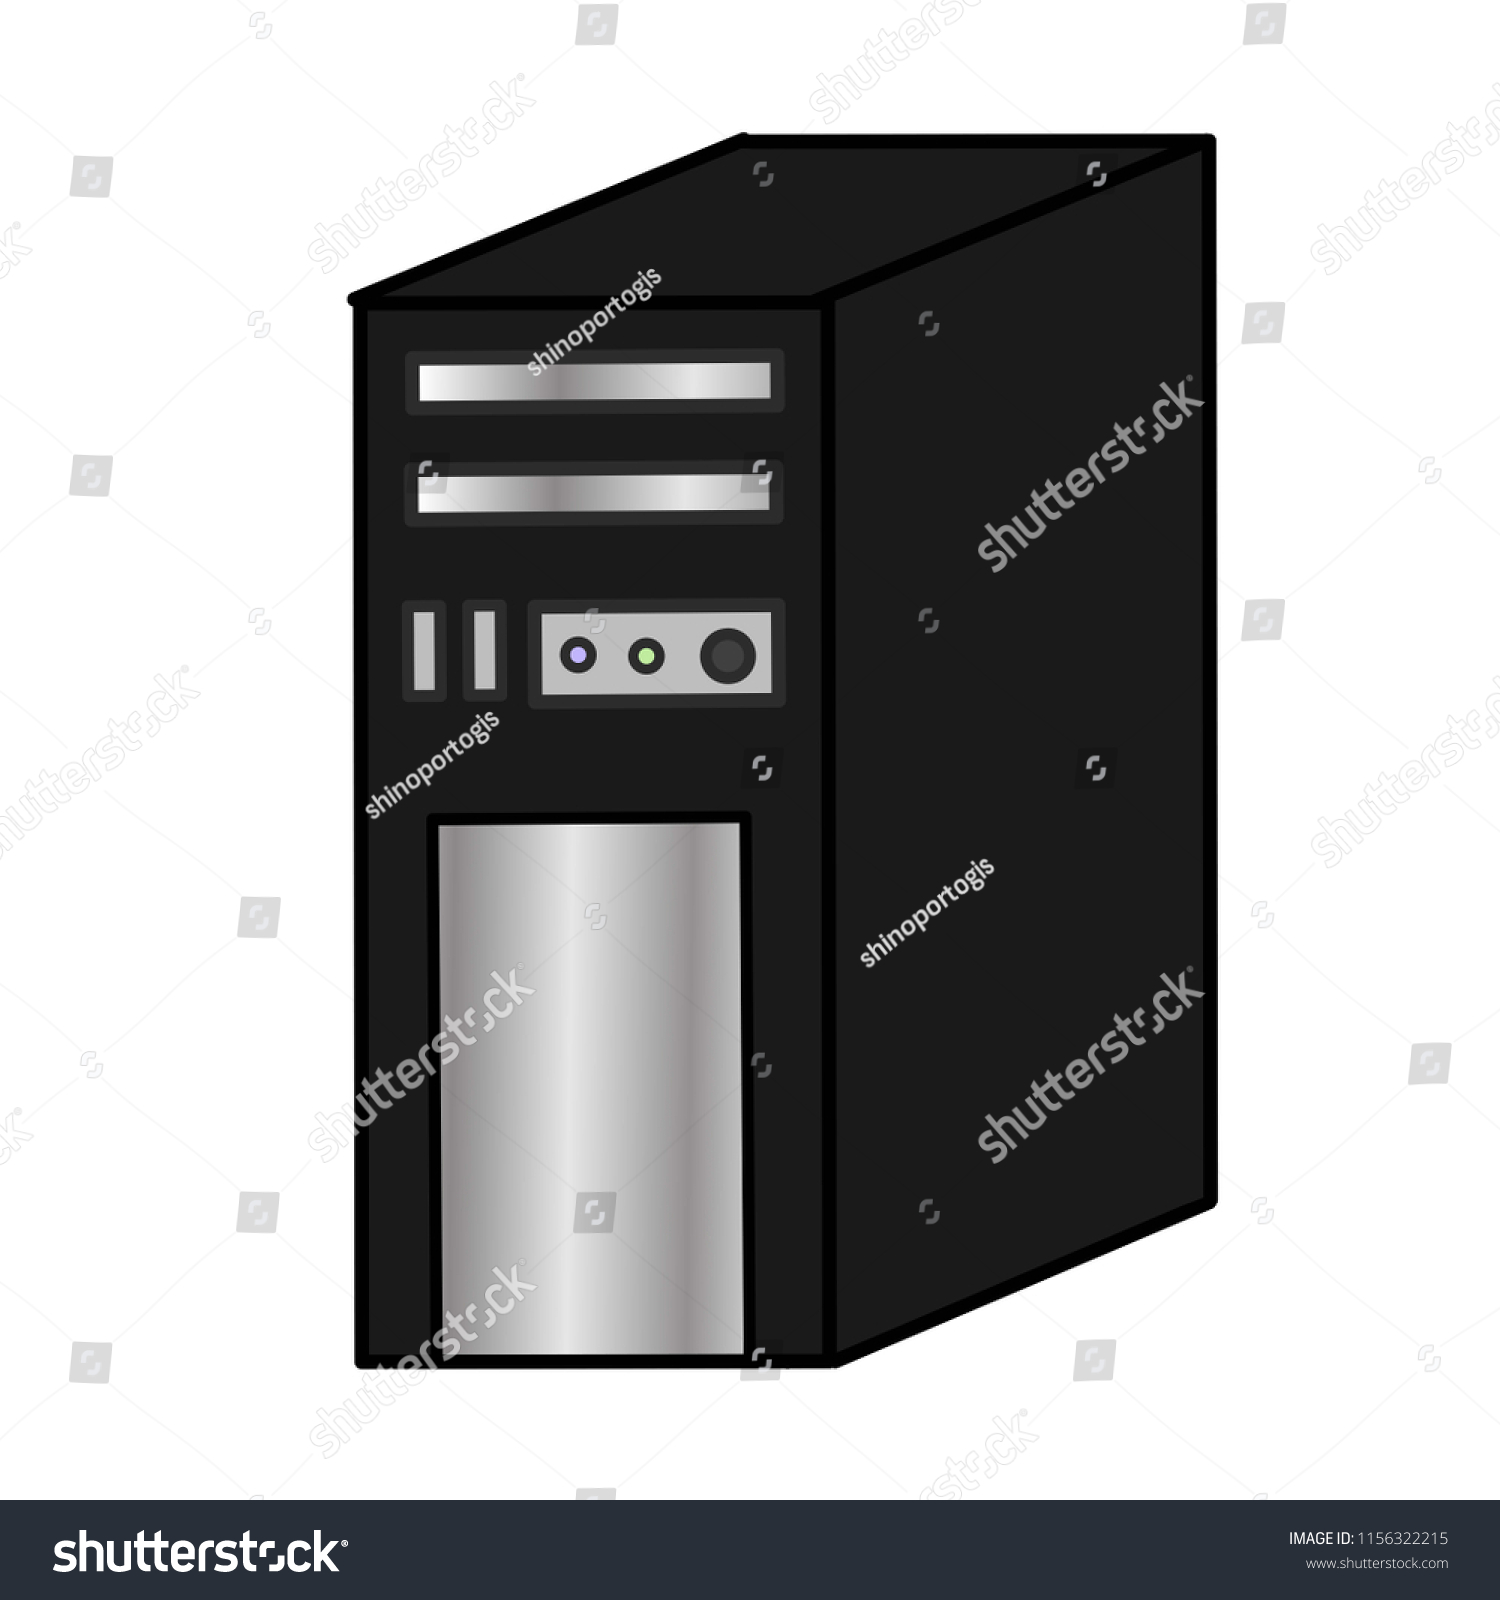 hand drawing illustration cpu computer cpu stock vector royalty free 1156322215 https www shutterstock com image vector hand drawing illustration cpu computer vector 1156322215